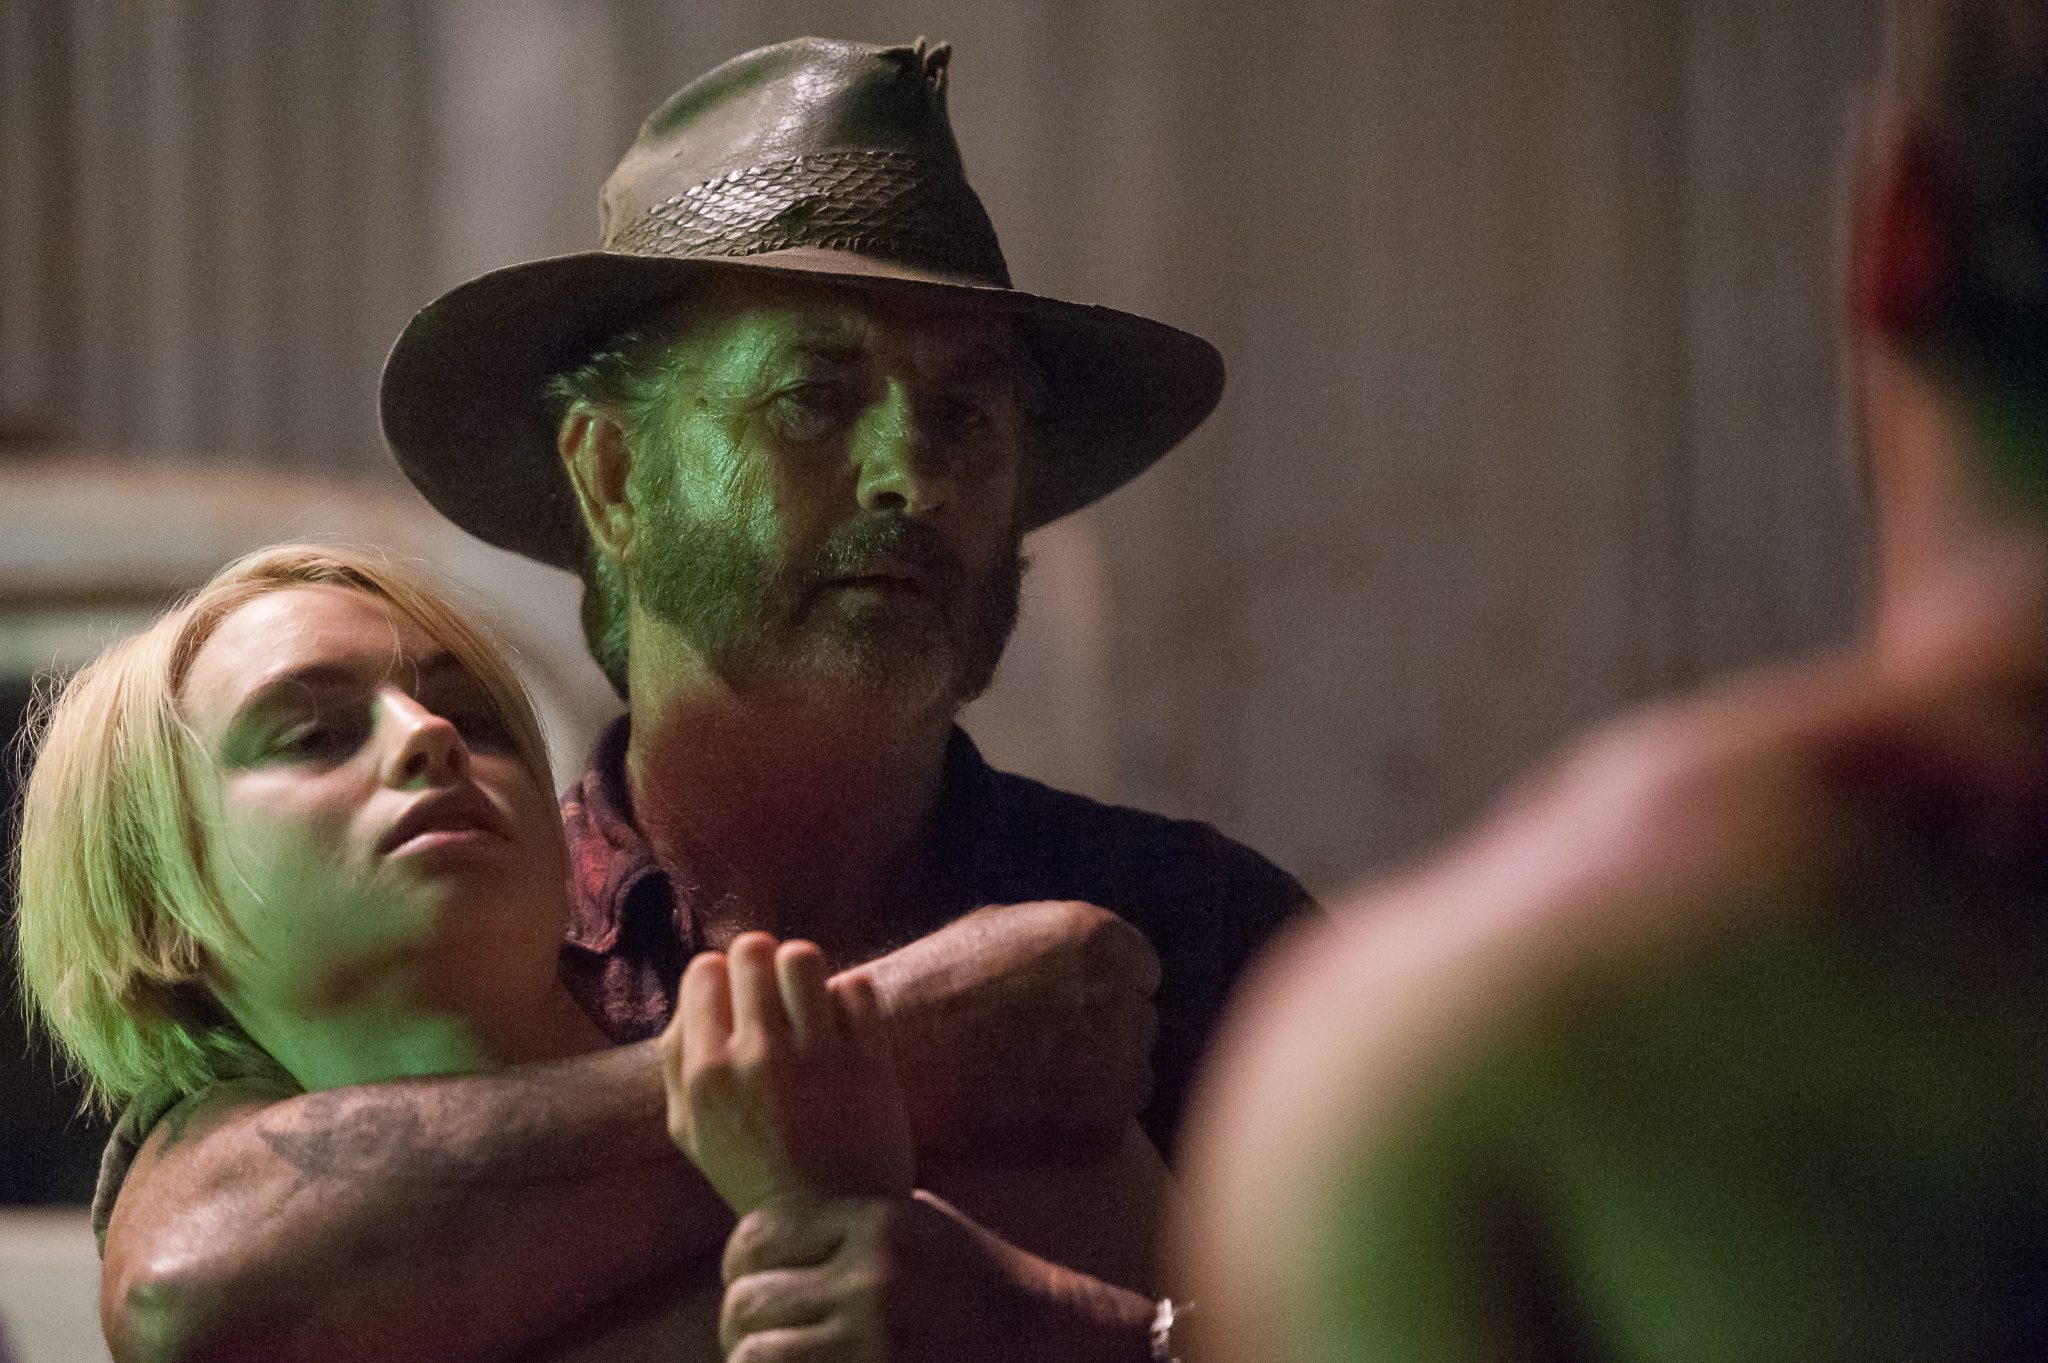 Episode 6 D40C 112 Lucy Fry as Eve Thorogood John Jarratt as Mick Taylor in WOLF CREEK. A Screentime Production for STAN. Photo Sam Oster - New Wolf Creek: The Series Clip Bares its Fangs